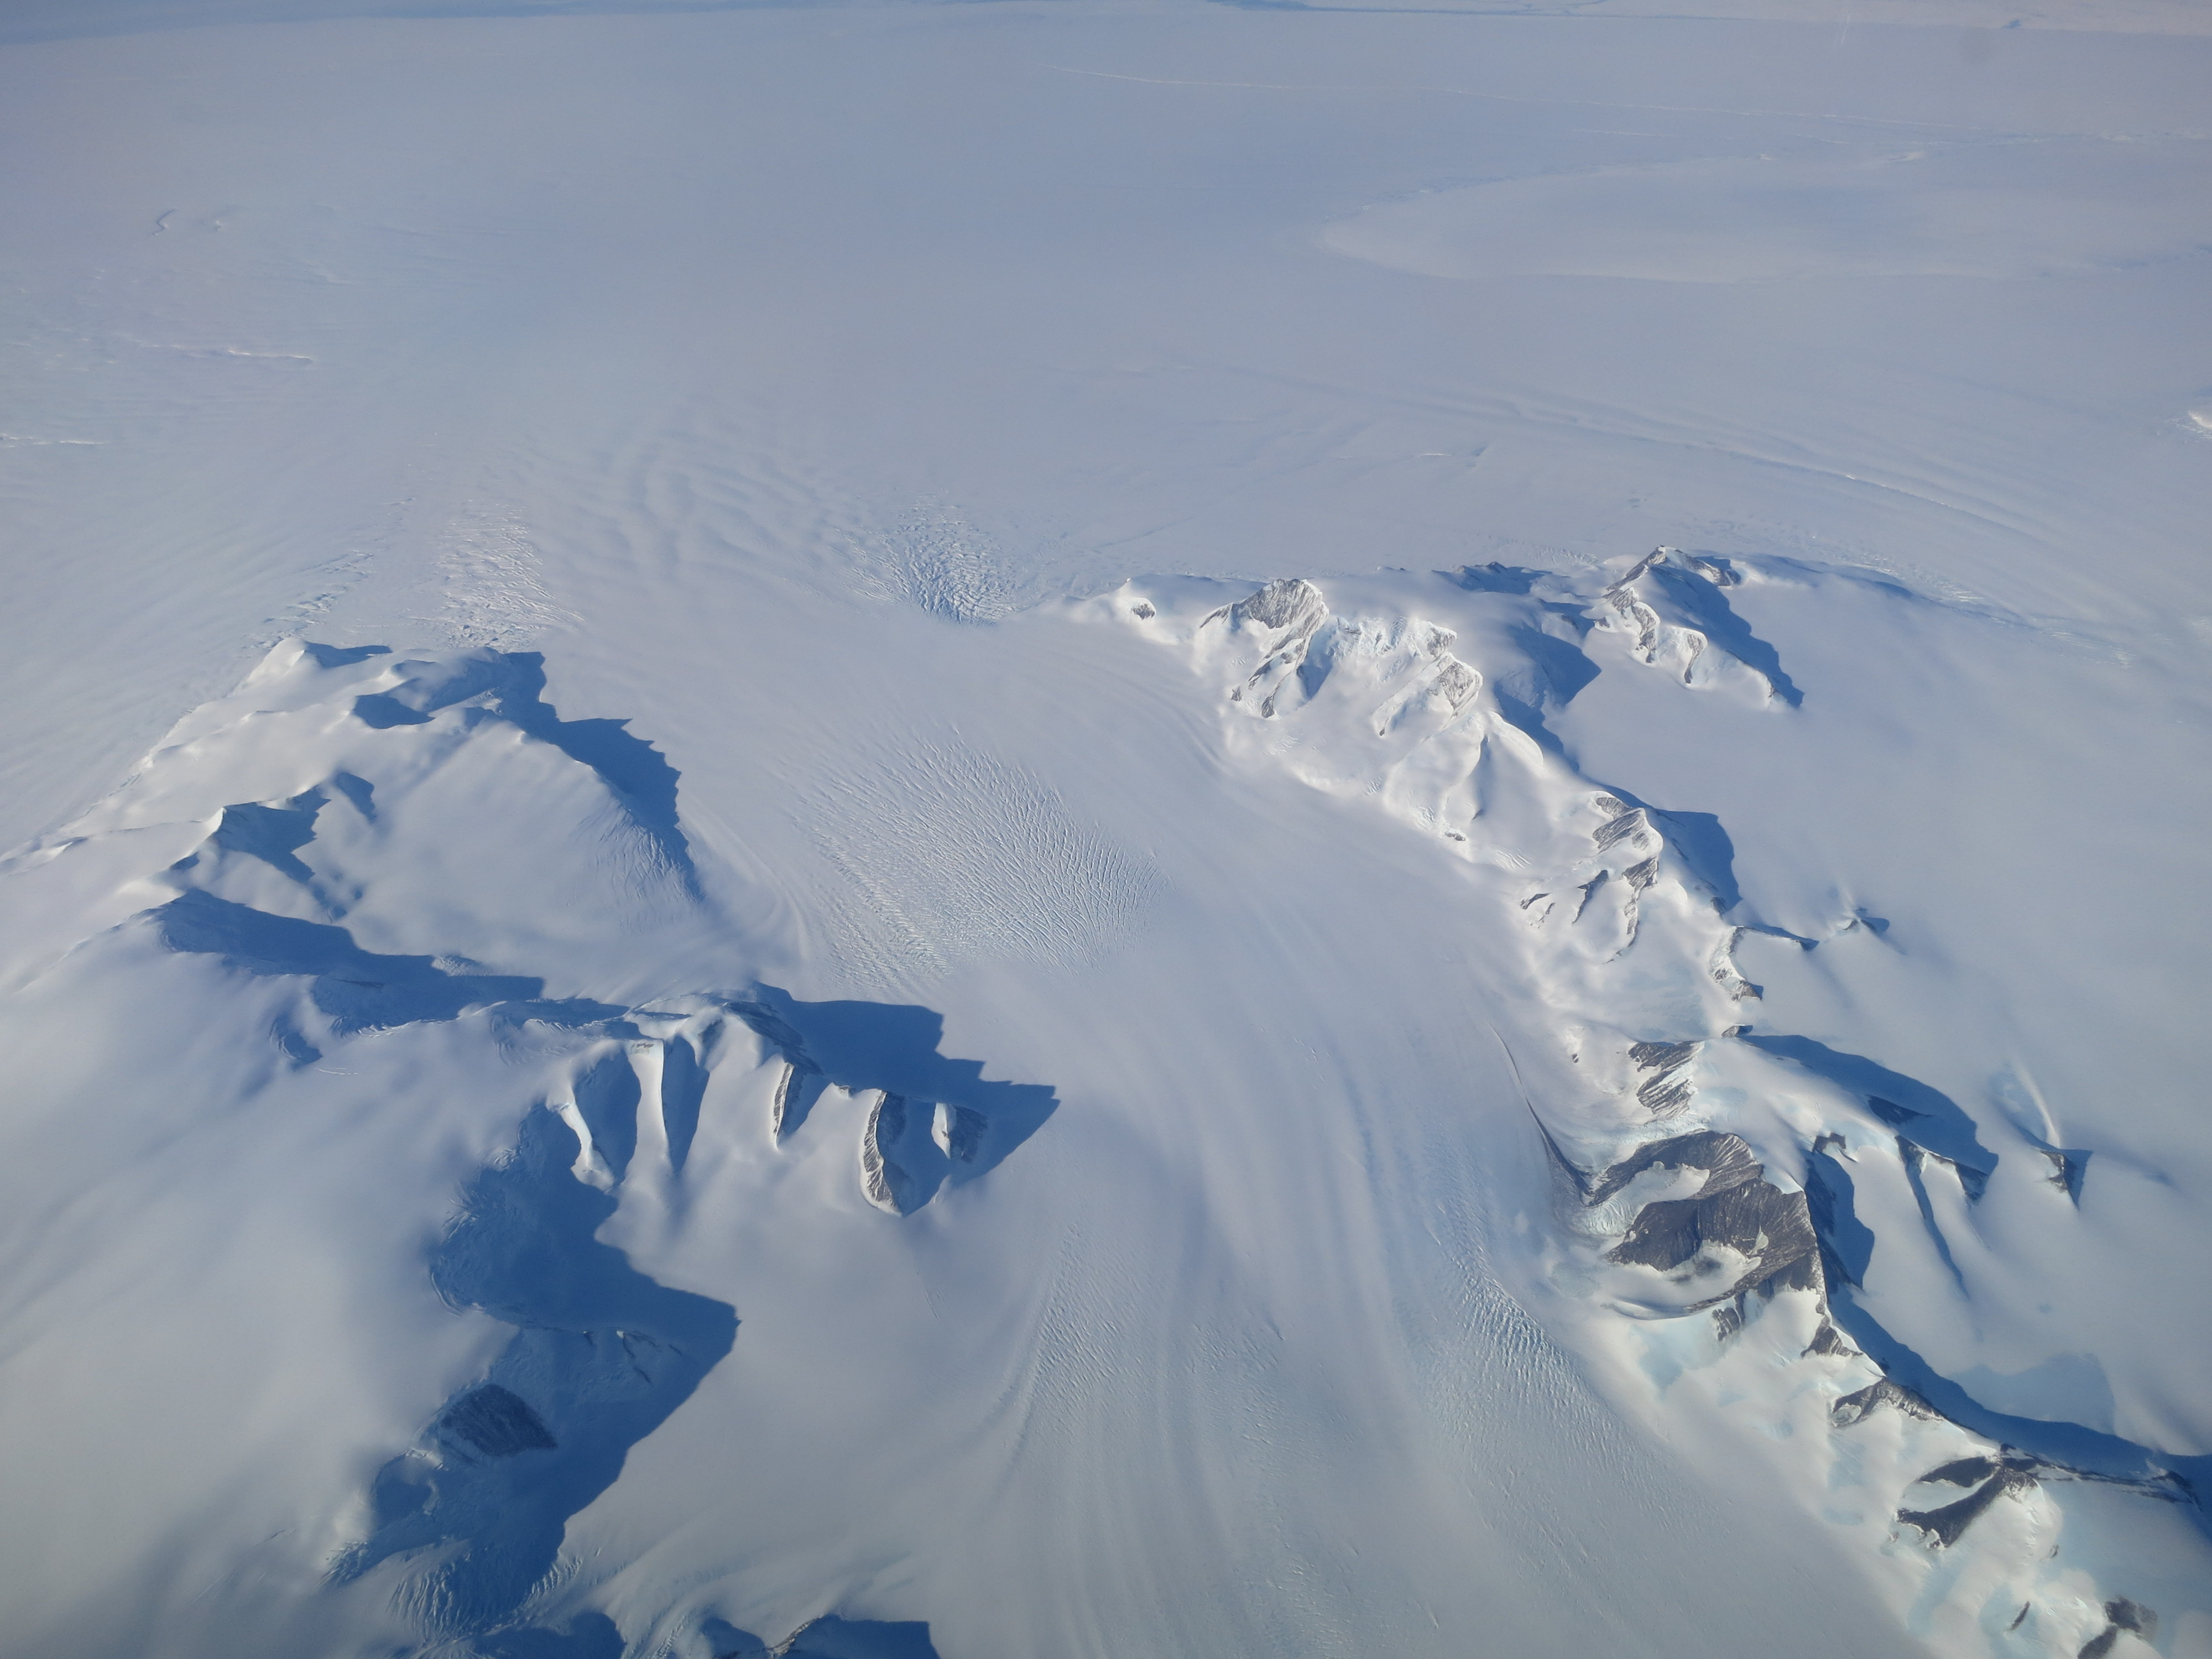 Mass Gains of Antarctic Ice Sheet Greater than Losses